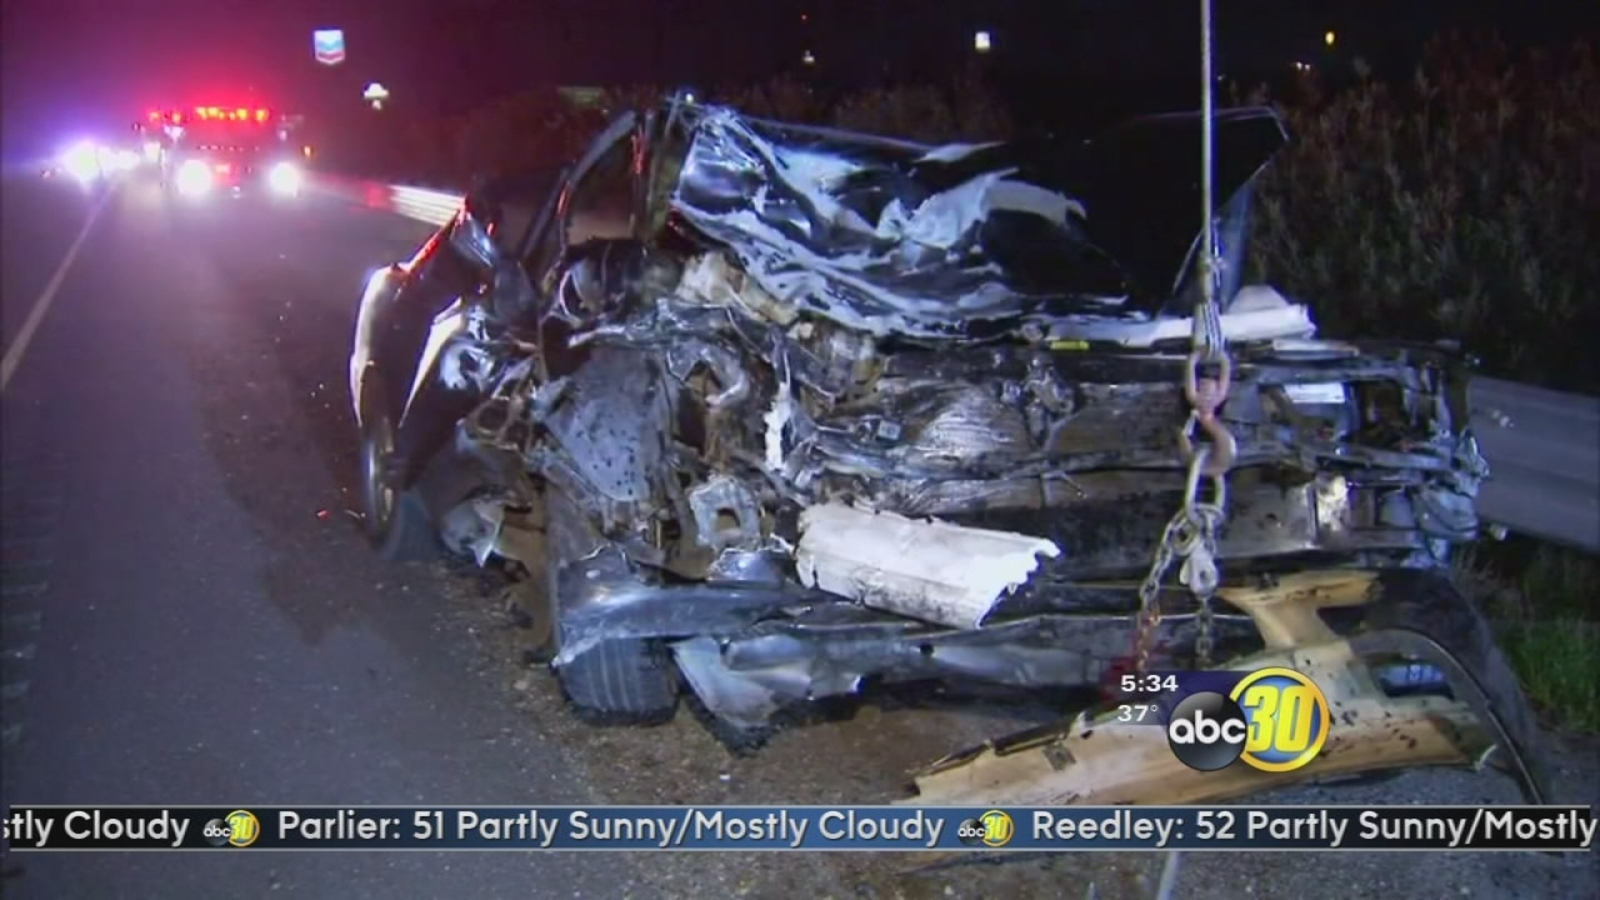 4 injured after head-on crash with drunk driver on Highway 99